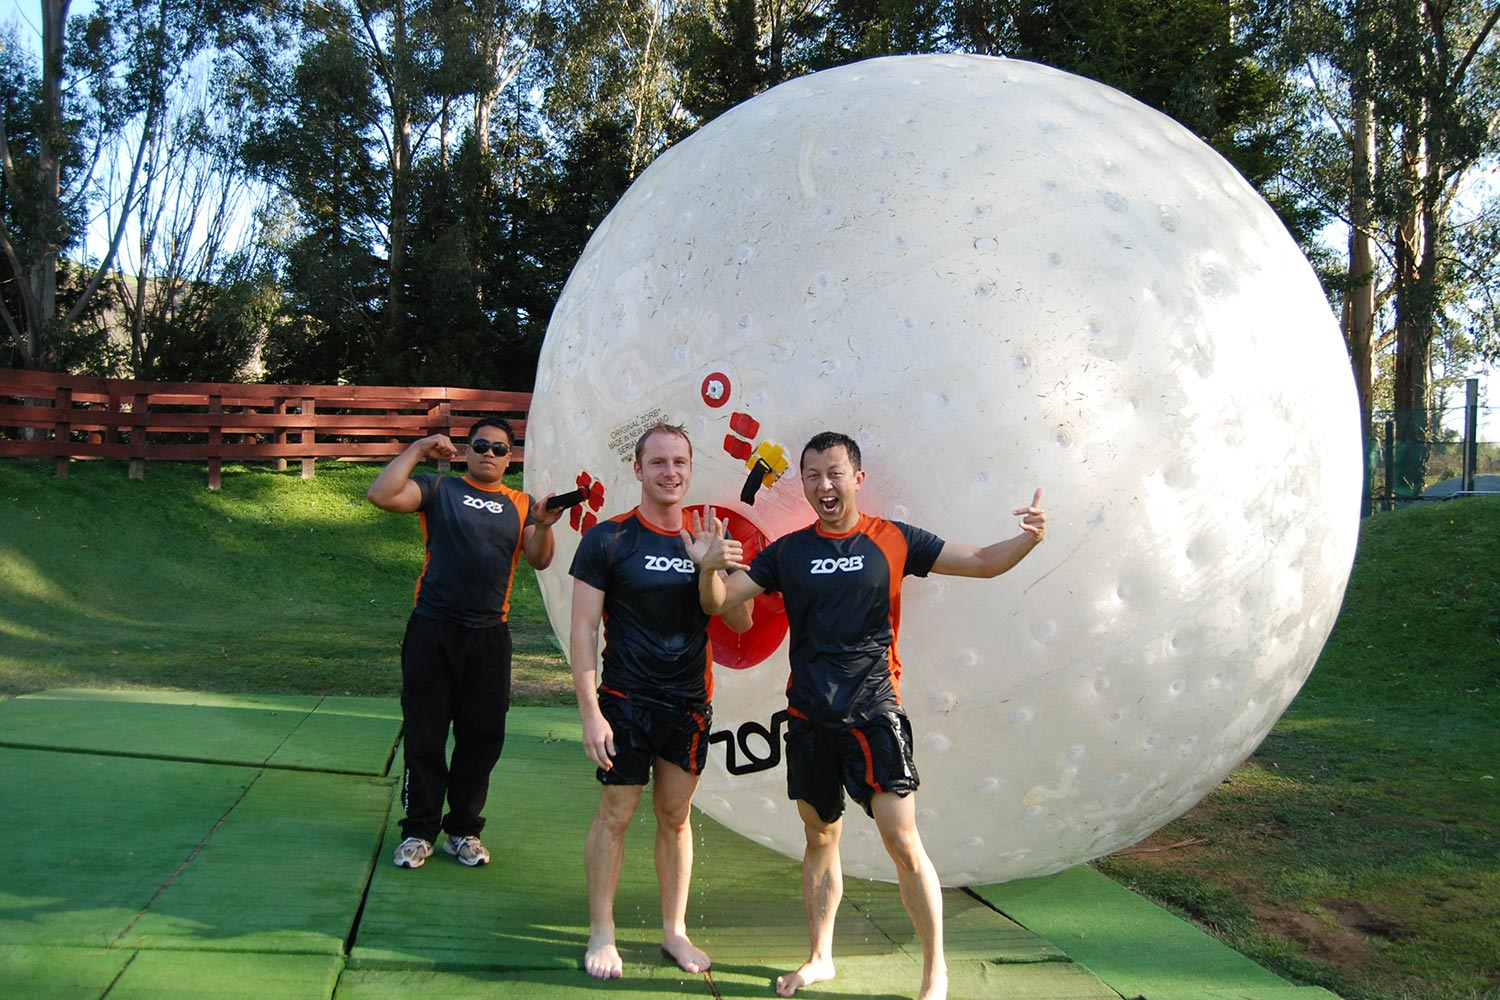 Halef and a friend standing in front of a giant Zorb ball